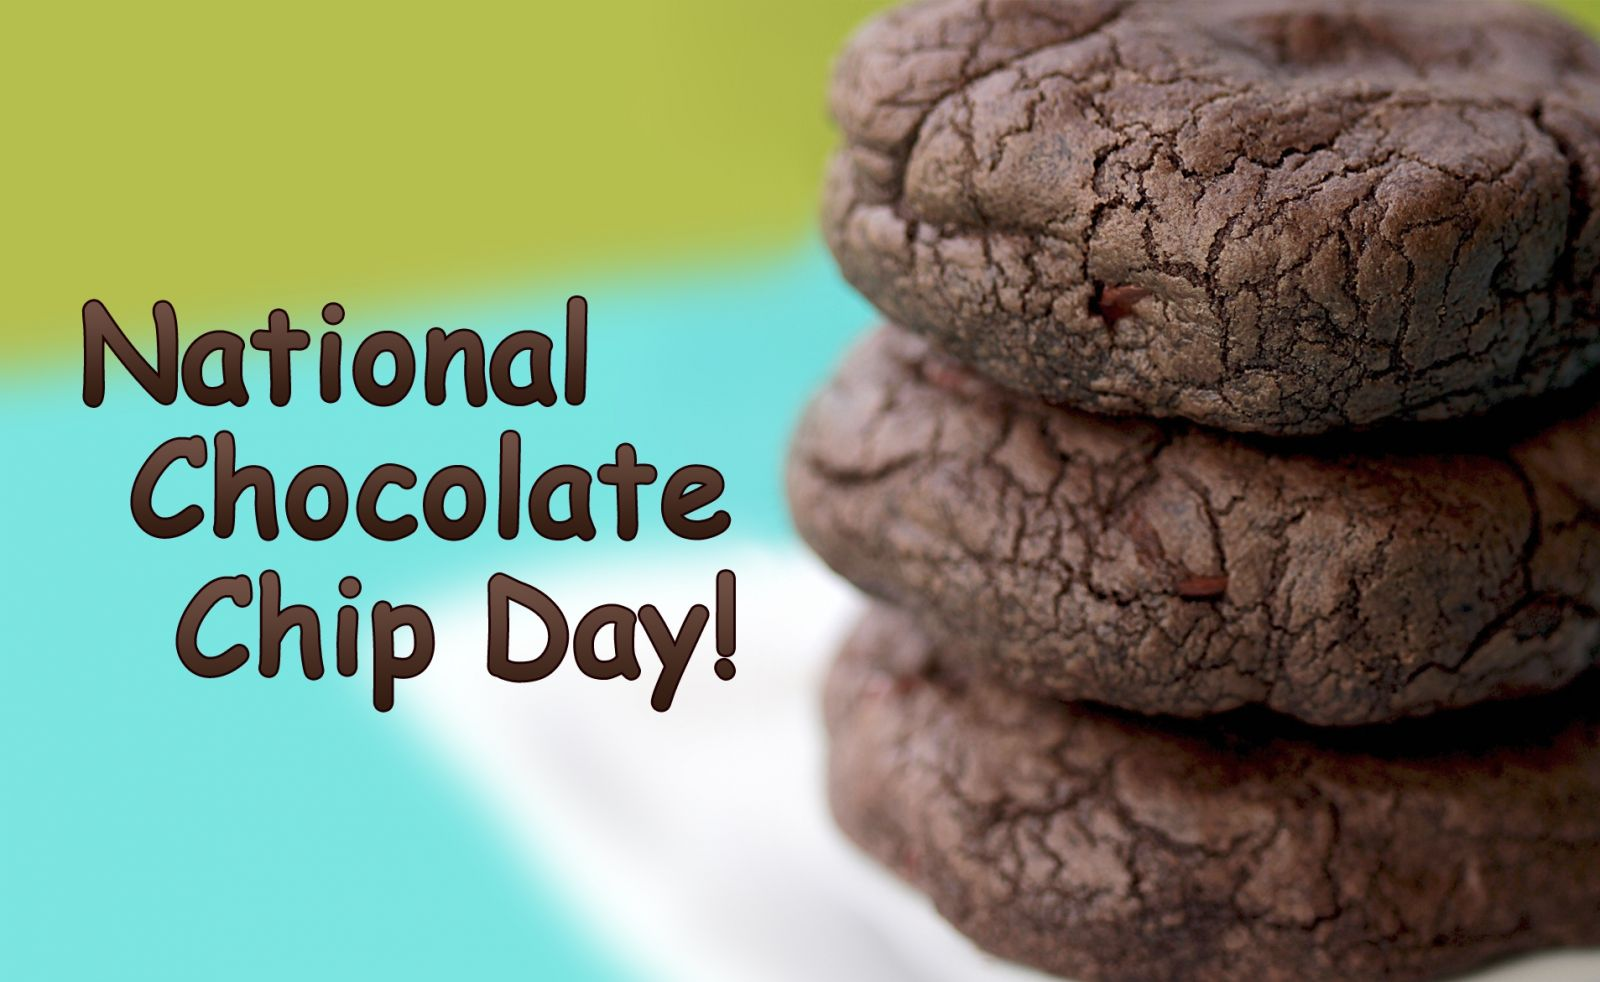 National Chocolate Chip Day - MyShopDiscounts Blog